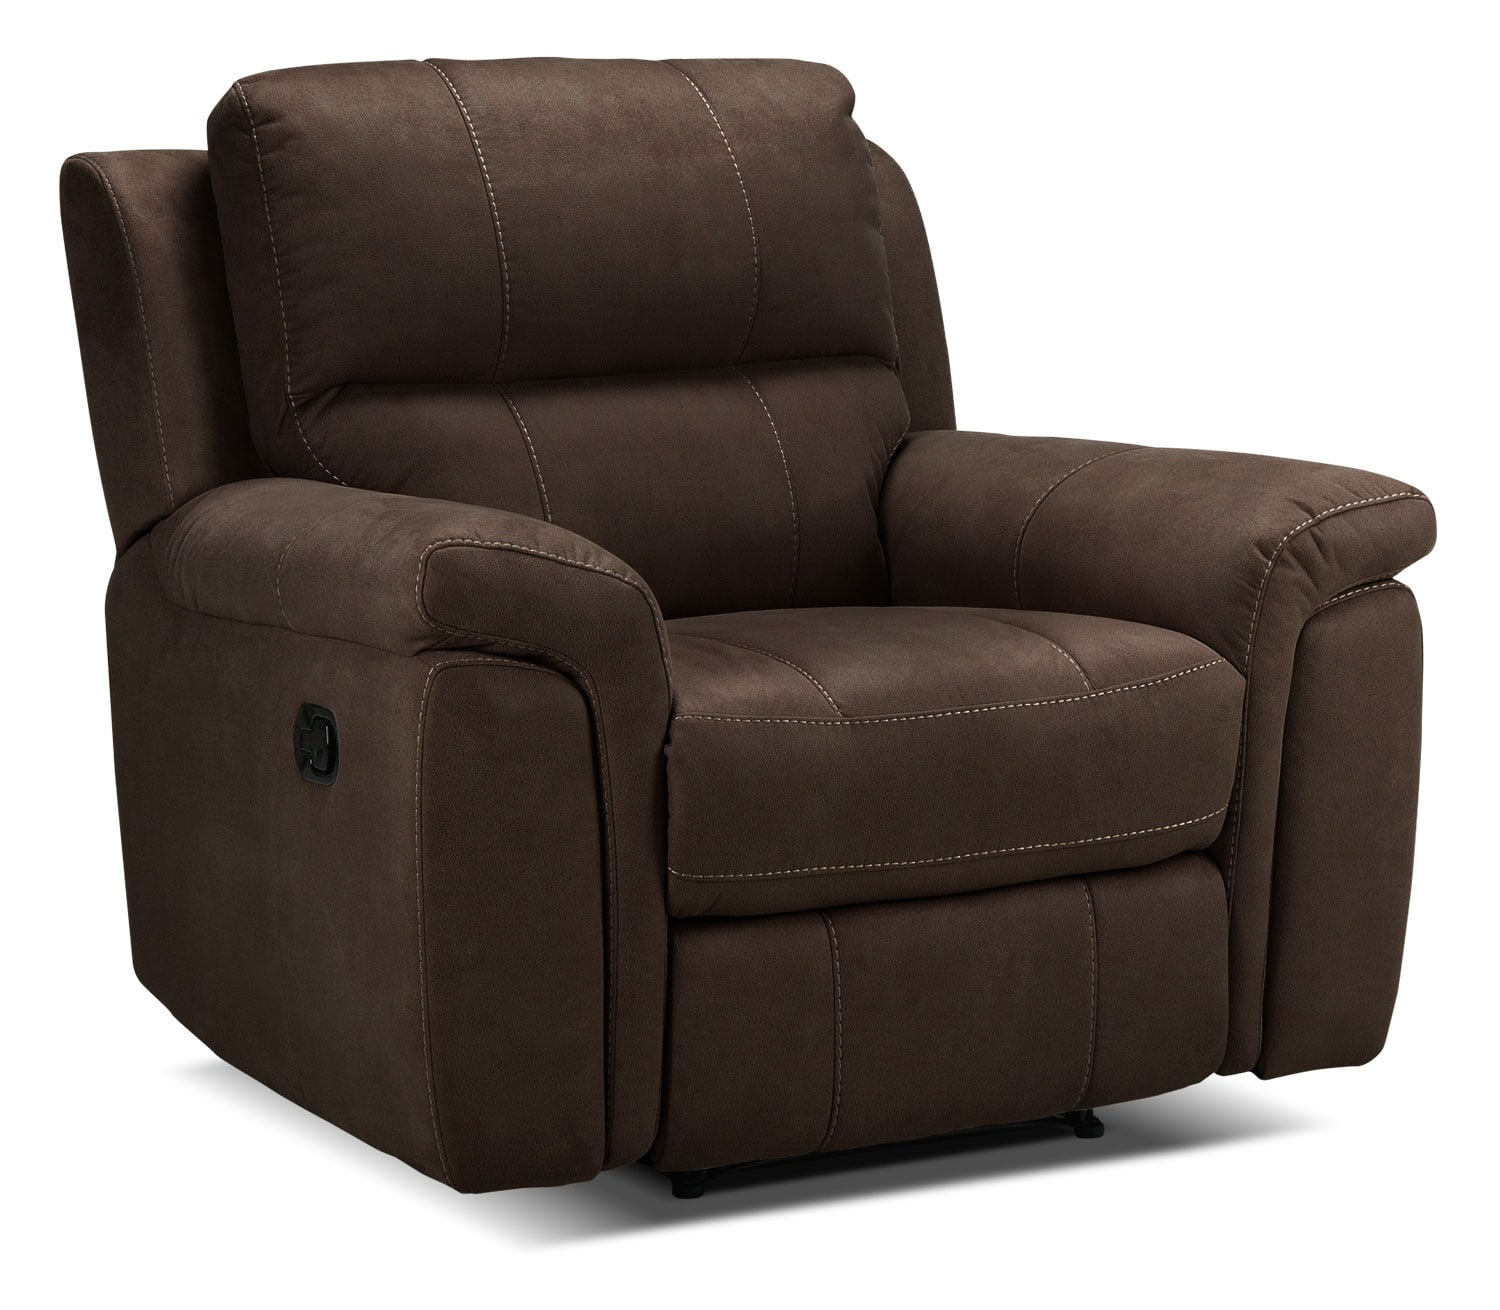 Living Room Furniture - Roarke Recliner - Walnut